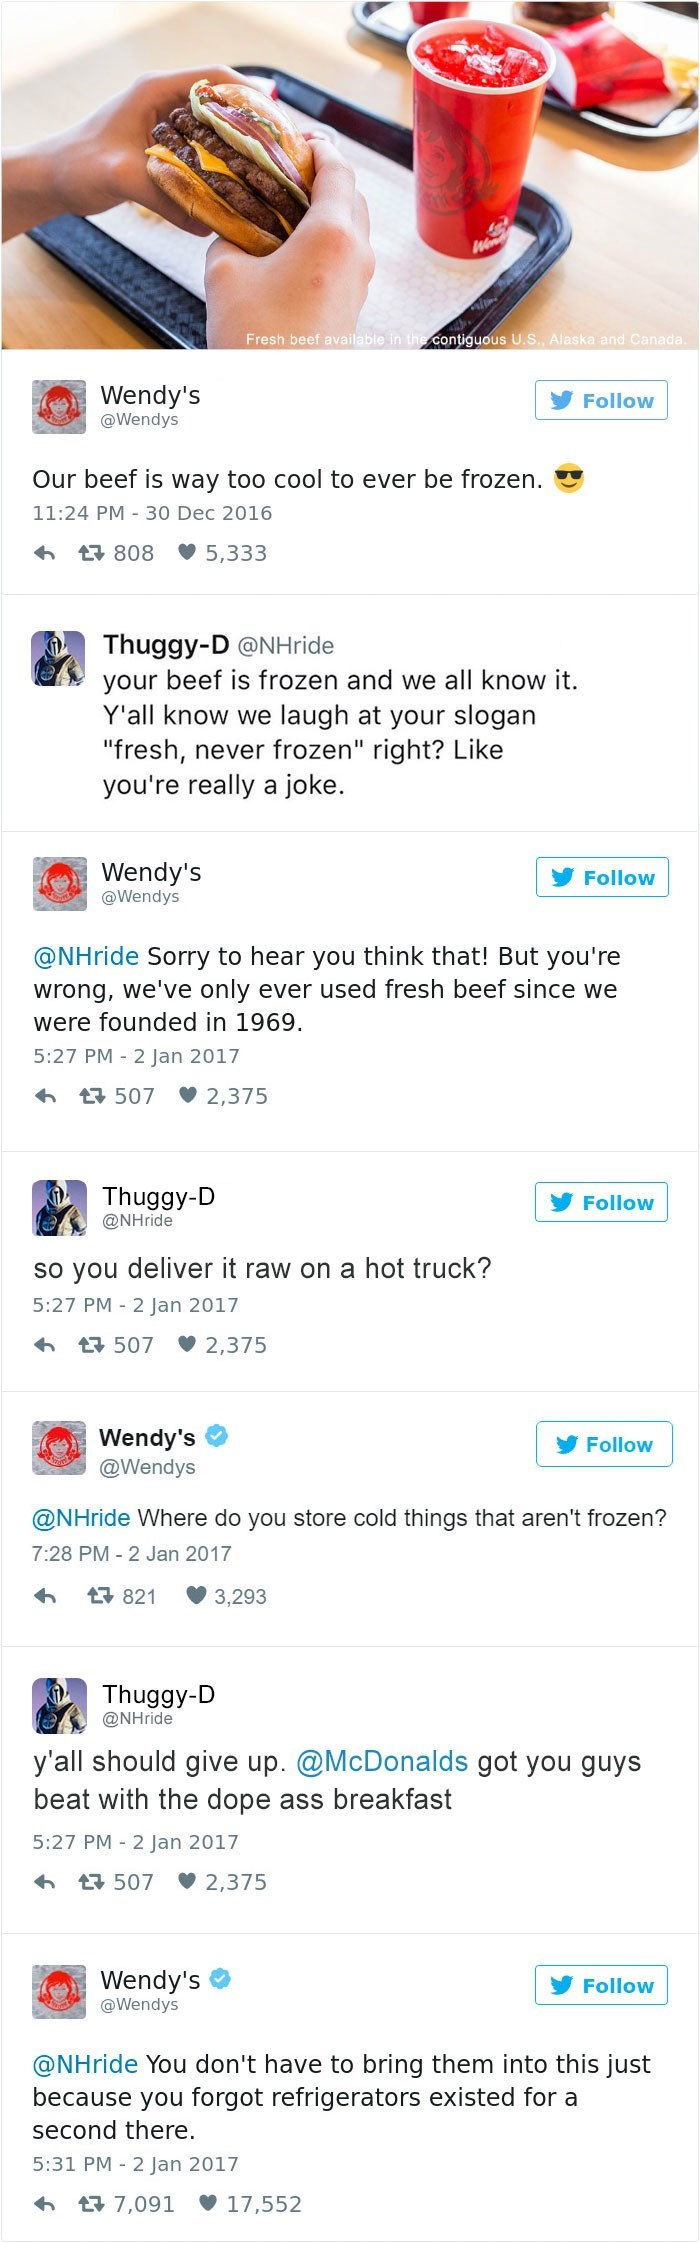 """Text - We Fresh beef available in the contiguous U.S., Alaska and Canada Wendy's Follow @Wendys Our beef is way too cool to ever be frozen. 11:24 PM 30 Dec 2016 t 808 5,333 Thuggy-D @NHride your beef is frozen and we all know it. Y'all know we laugh at your slogan """"fresh, never frozen"""" right?? Like you're really a joke. Wendy's @Wendys Follow @NHride Sorry to hear you think that! But you're wrong, we've only ever used fresh beef since we were founded in 1969. 5:27 PM -2 Jan 2017 2,375 507 Thuggy"""